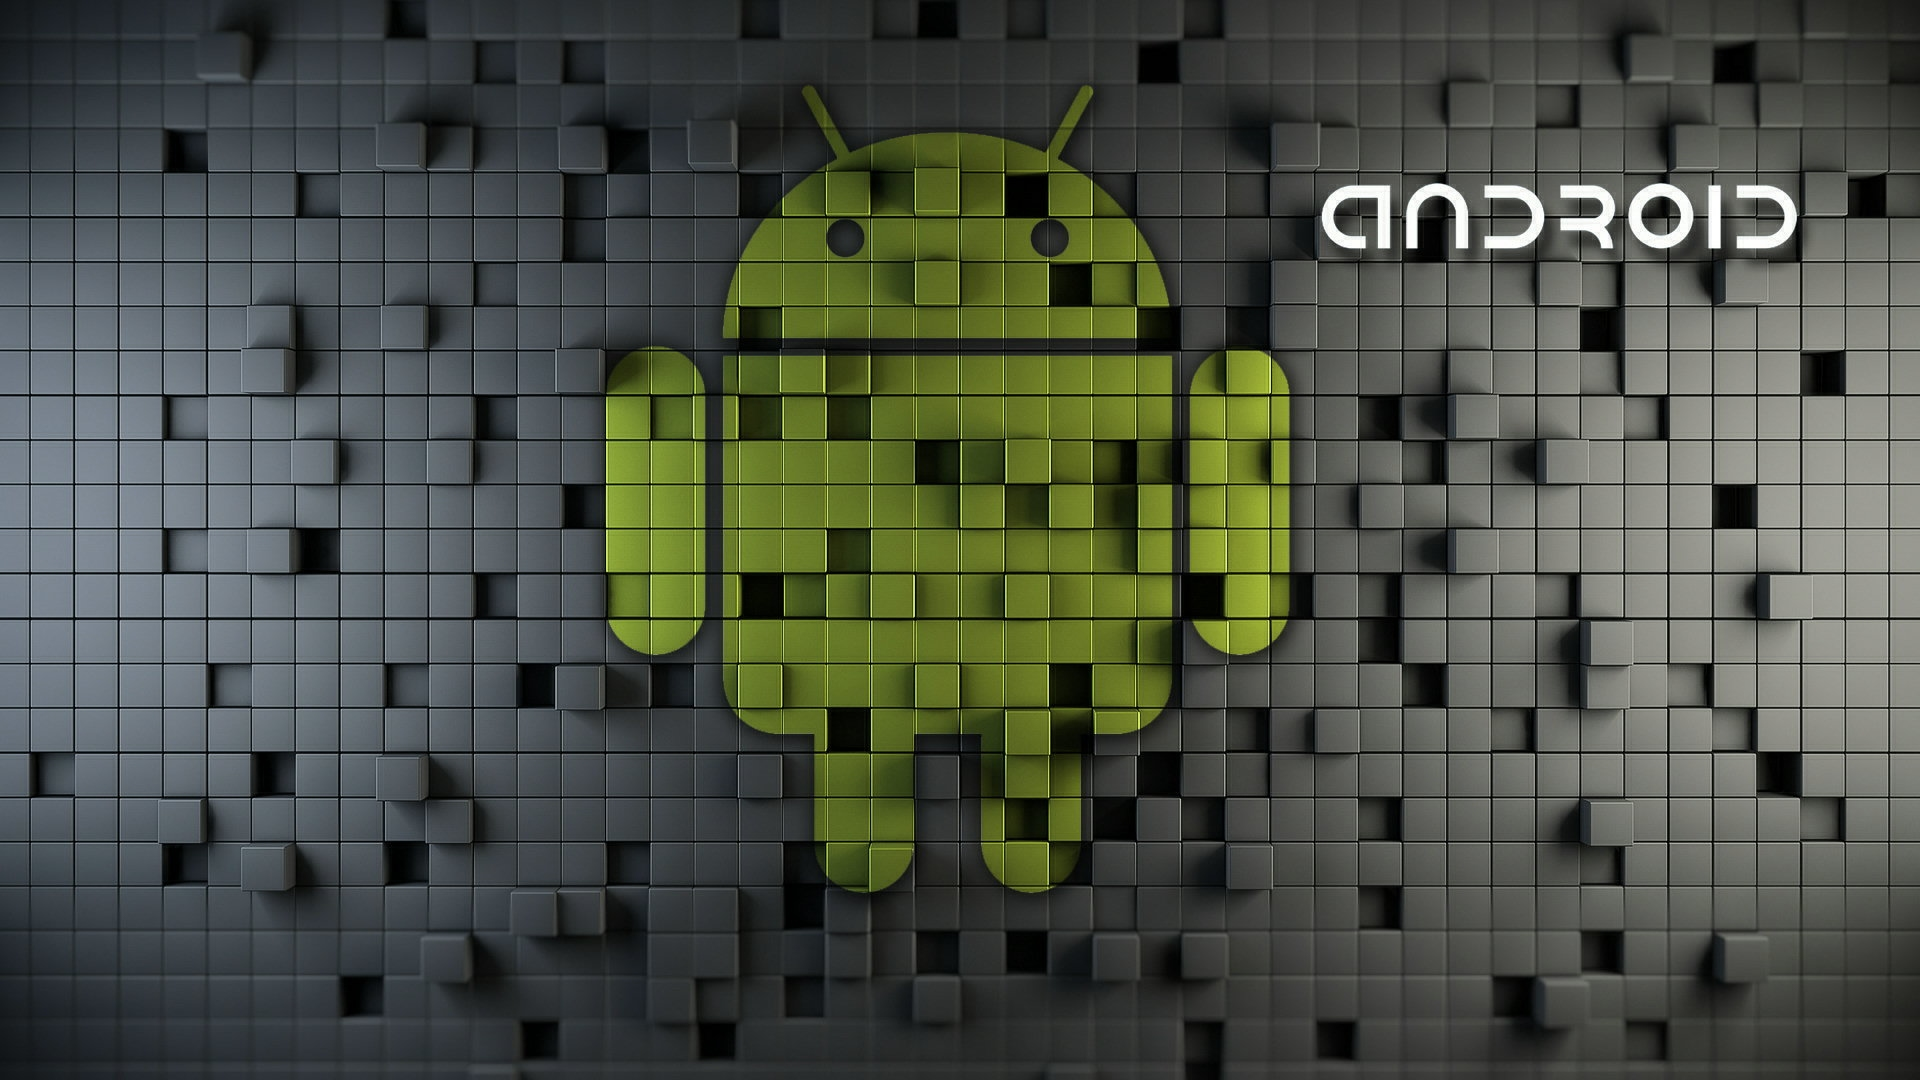 android hd wallpaper